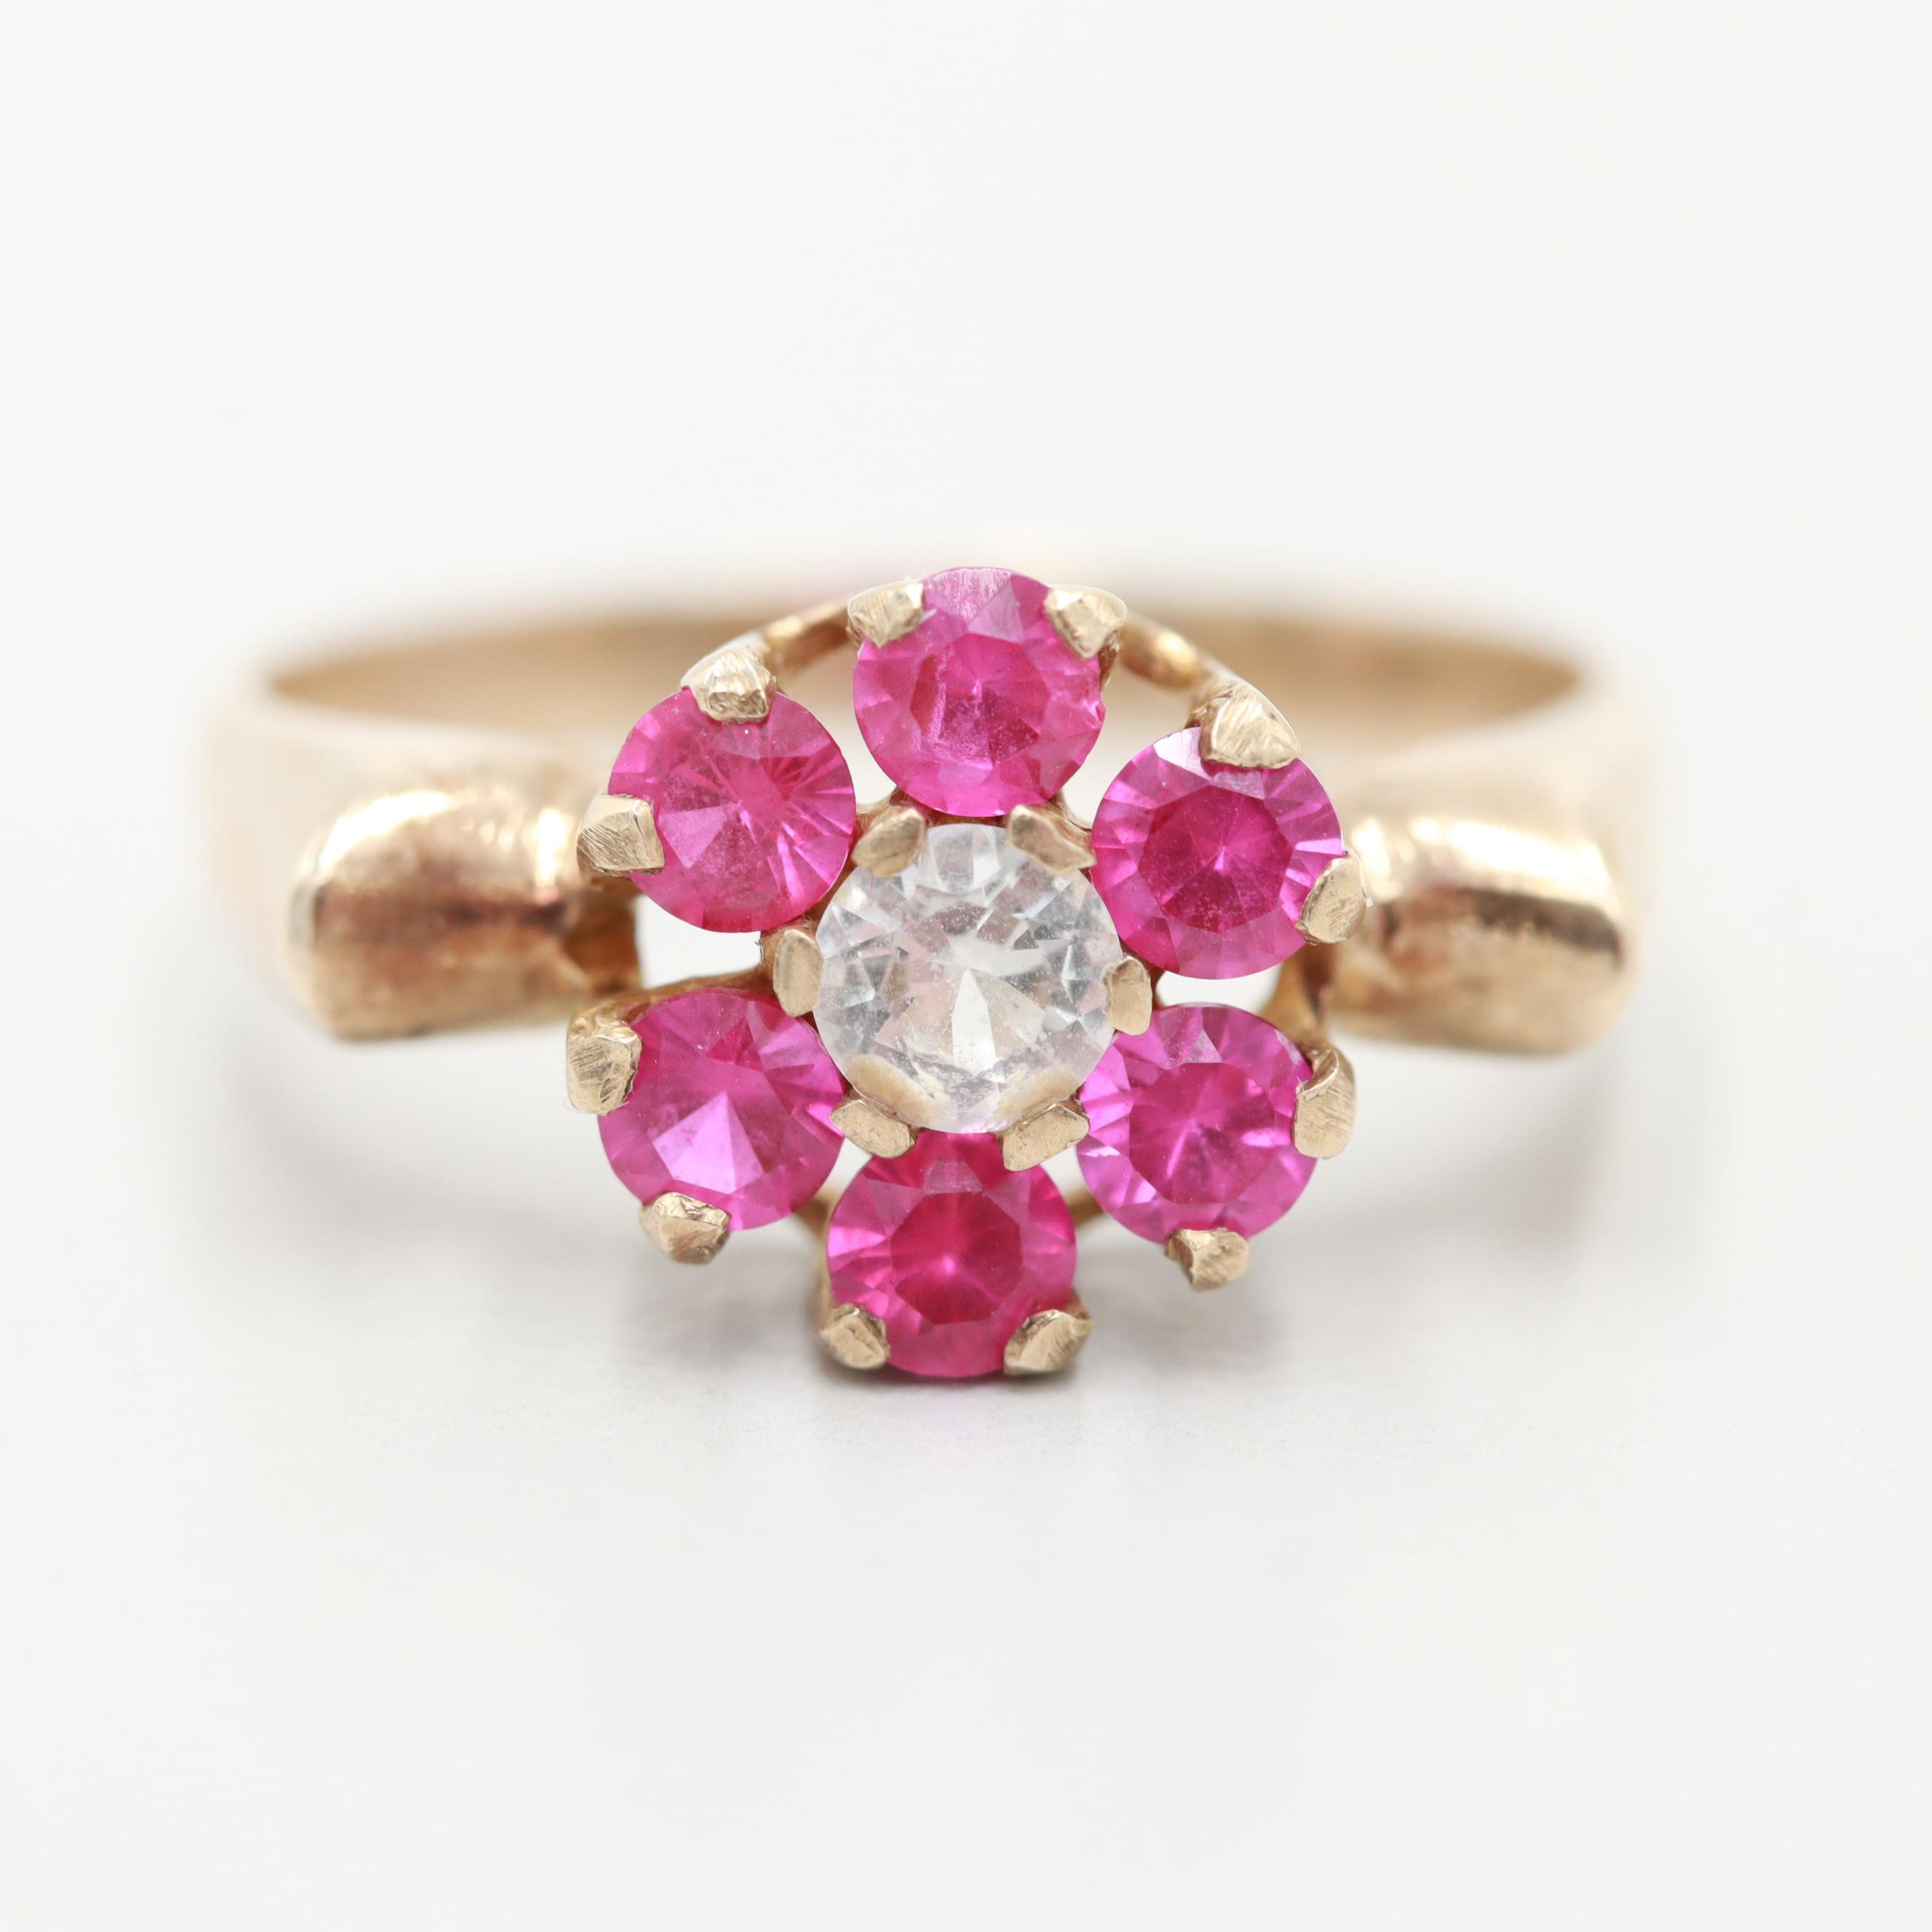 14K Yellow Gold White Synthetic Spinel and Synthetic Ruby Floral Ring